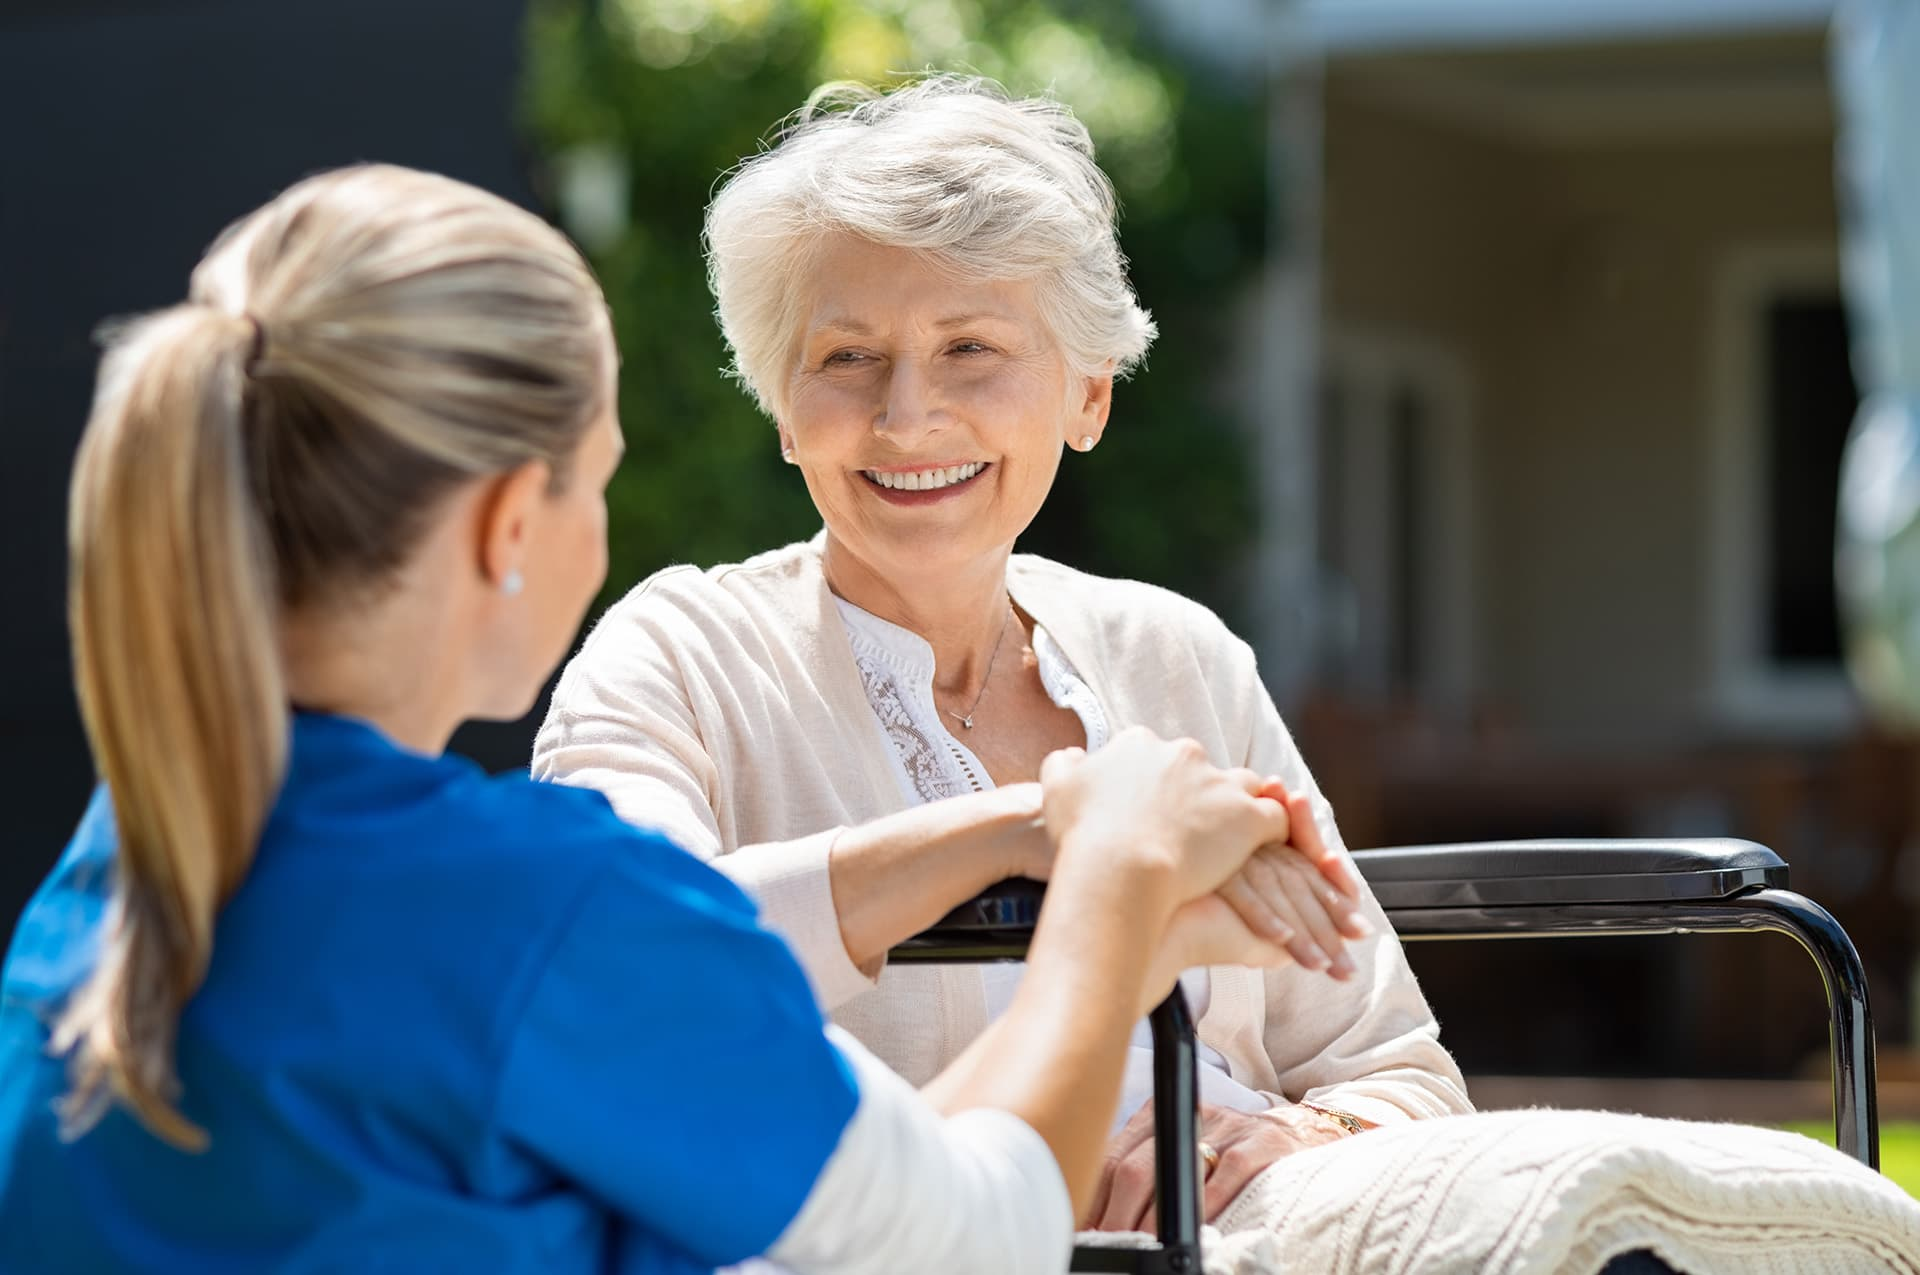 Nurse caring for a patient in an assisted living facility with insurance